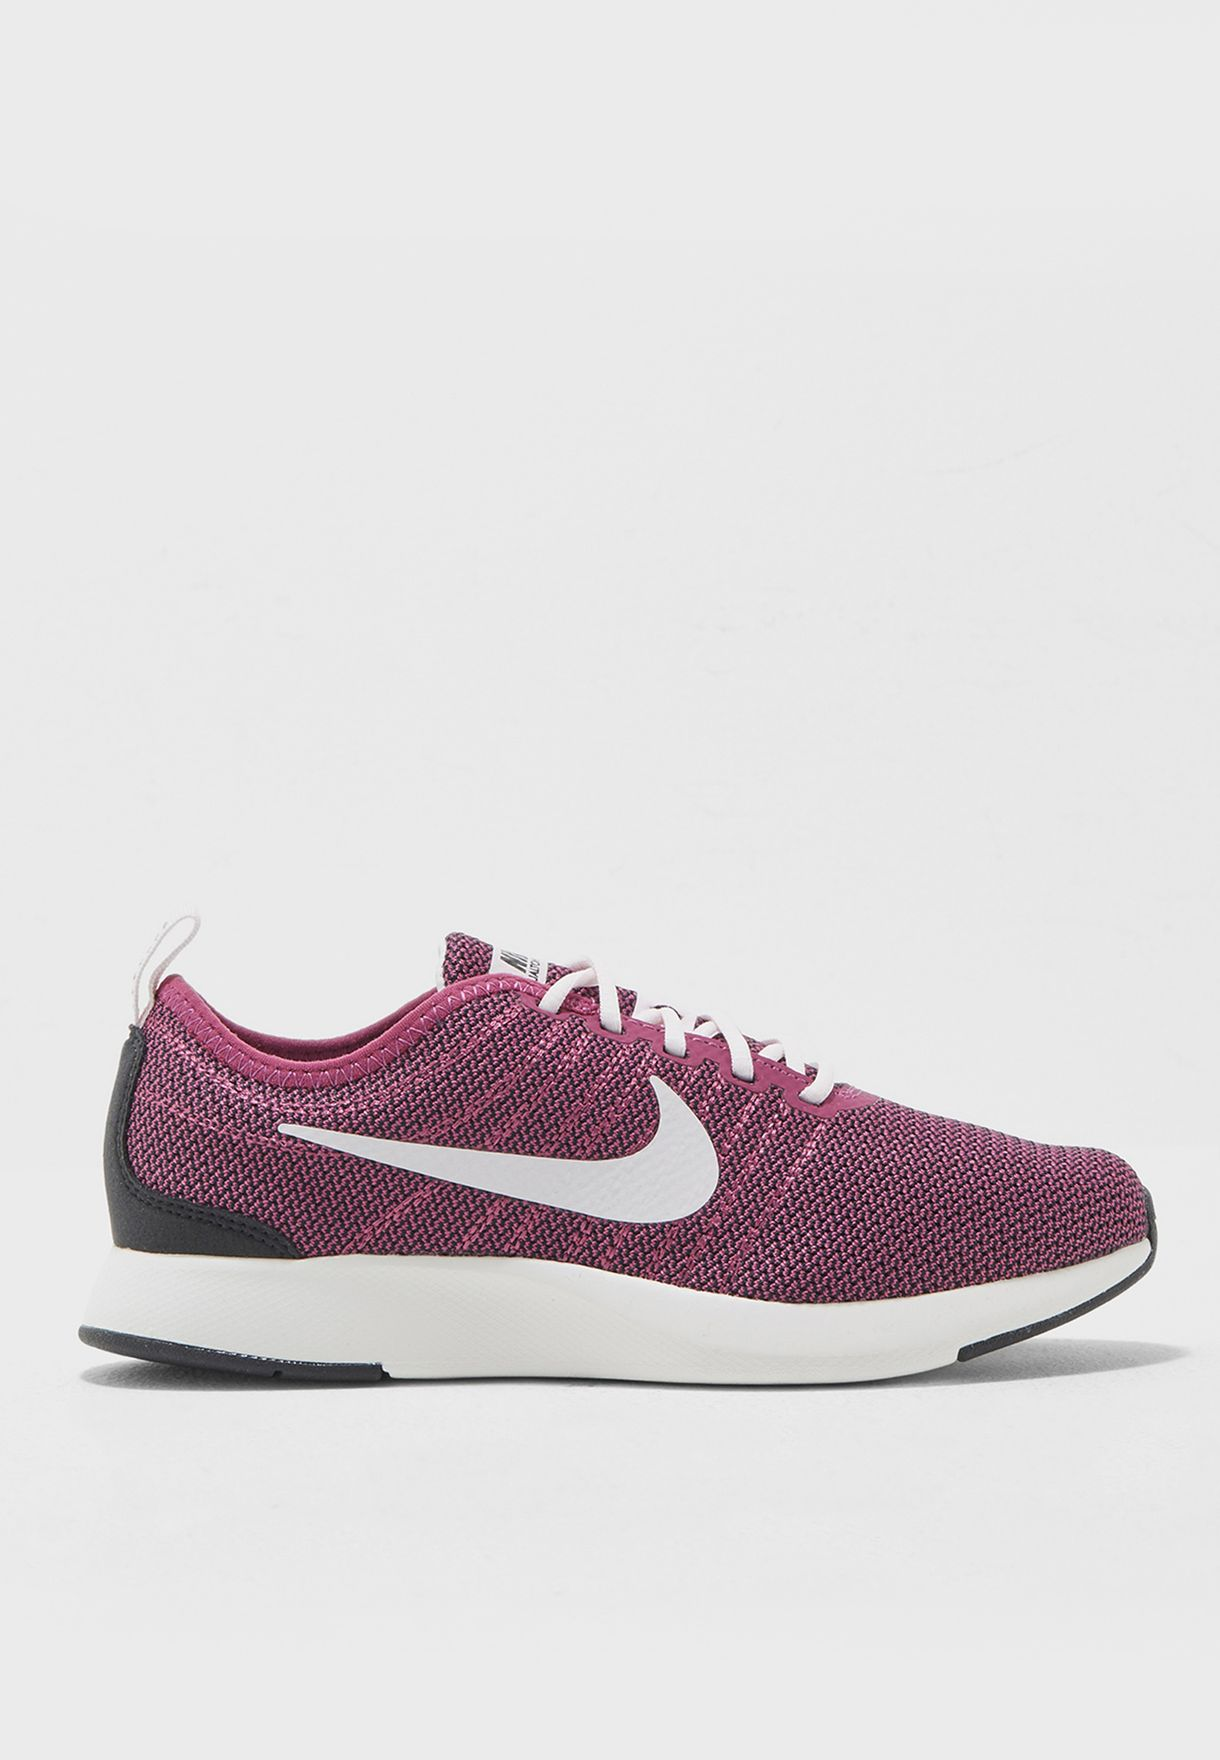 3f0d121225 Shop Nike purple Dualtone Racer Youth 917649-601 for Kids in Kuwait ...